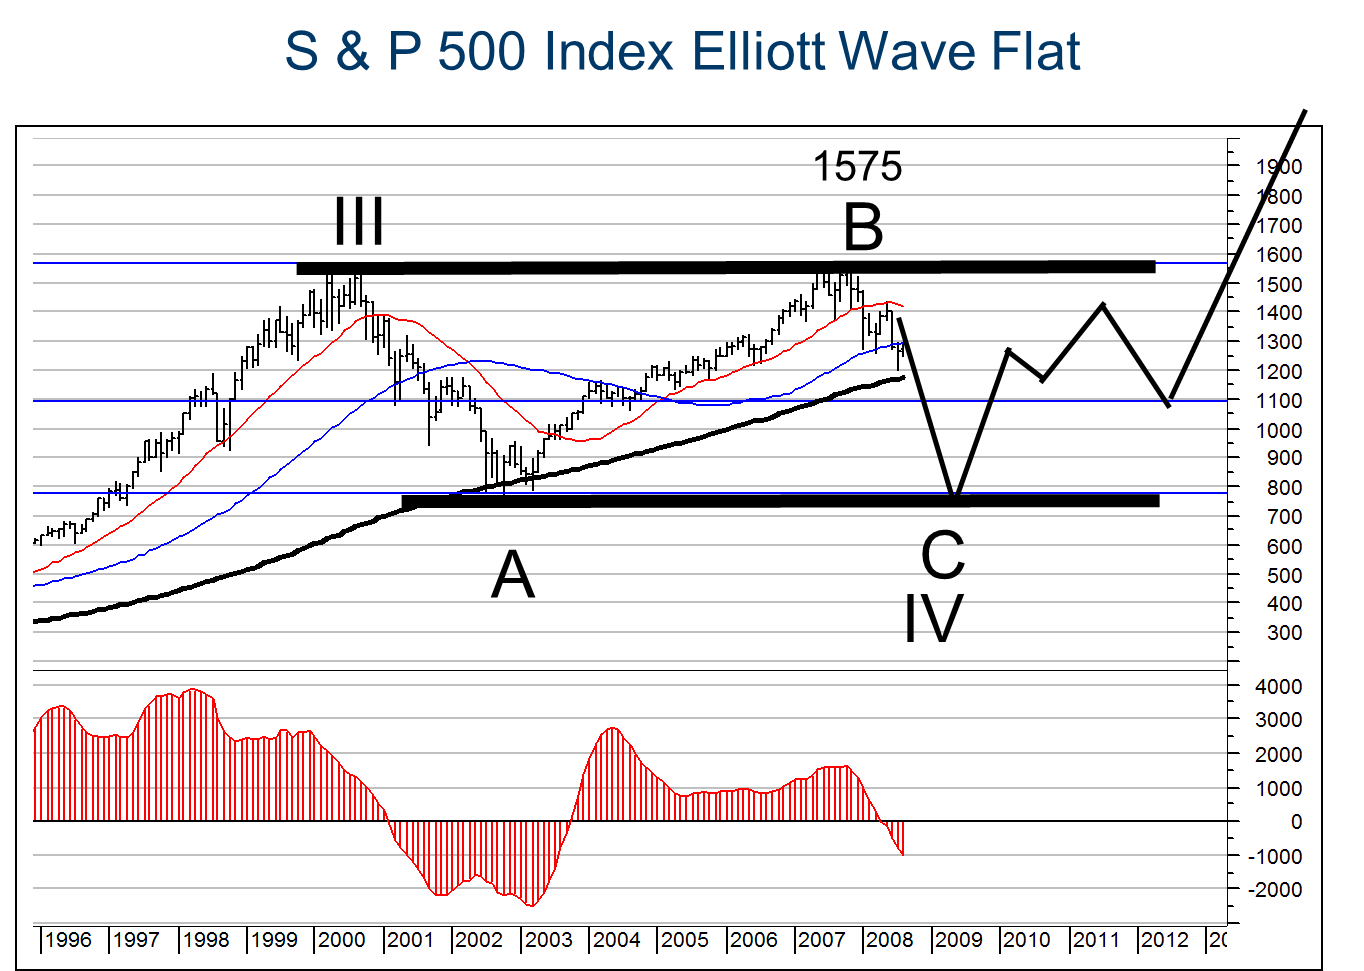 In August 2008  my Elliott Wave Counts was that a FLAT correction A-B-C would unfold from the high in 2000. This implied that the decline from the peak in 2008 would take the  S&P 500 Index  down to the low which it had registered in 2003, by 2009. I did not expect a financial crisis but a Major bear market to last until 2009. It was this low of wave C of Wave IV which I identified as a Buy-of-a-Generation and from which I forecast a new secular uptrend that would take the S&P 500 Index to new all-time highs.As you can see on the chart below has the S&P 500 recovered roughly following the line that I was predicting in 2008..